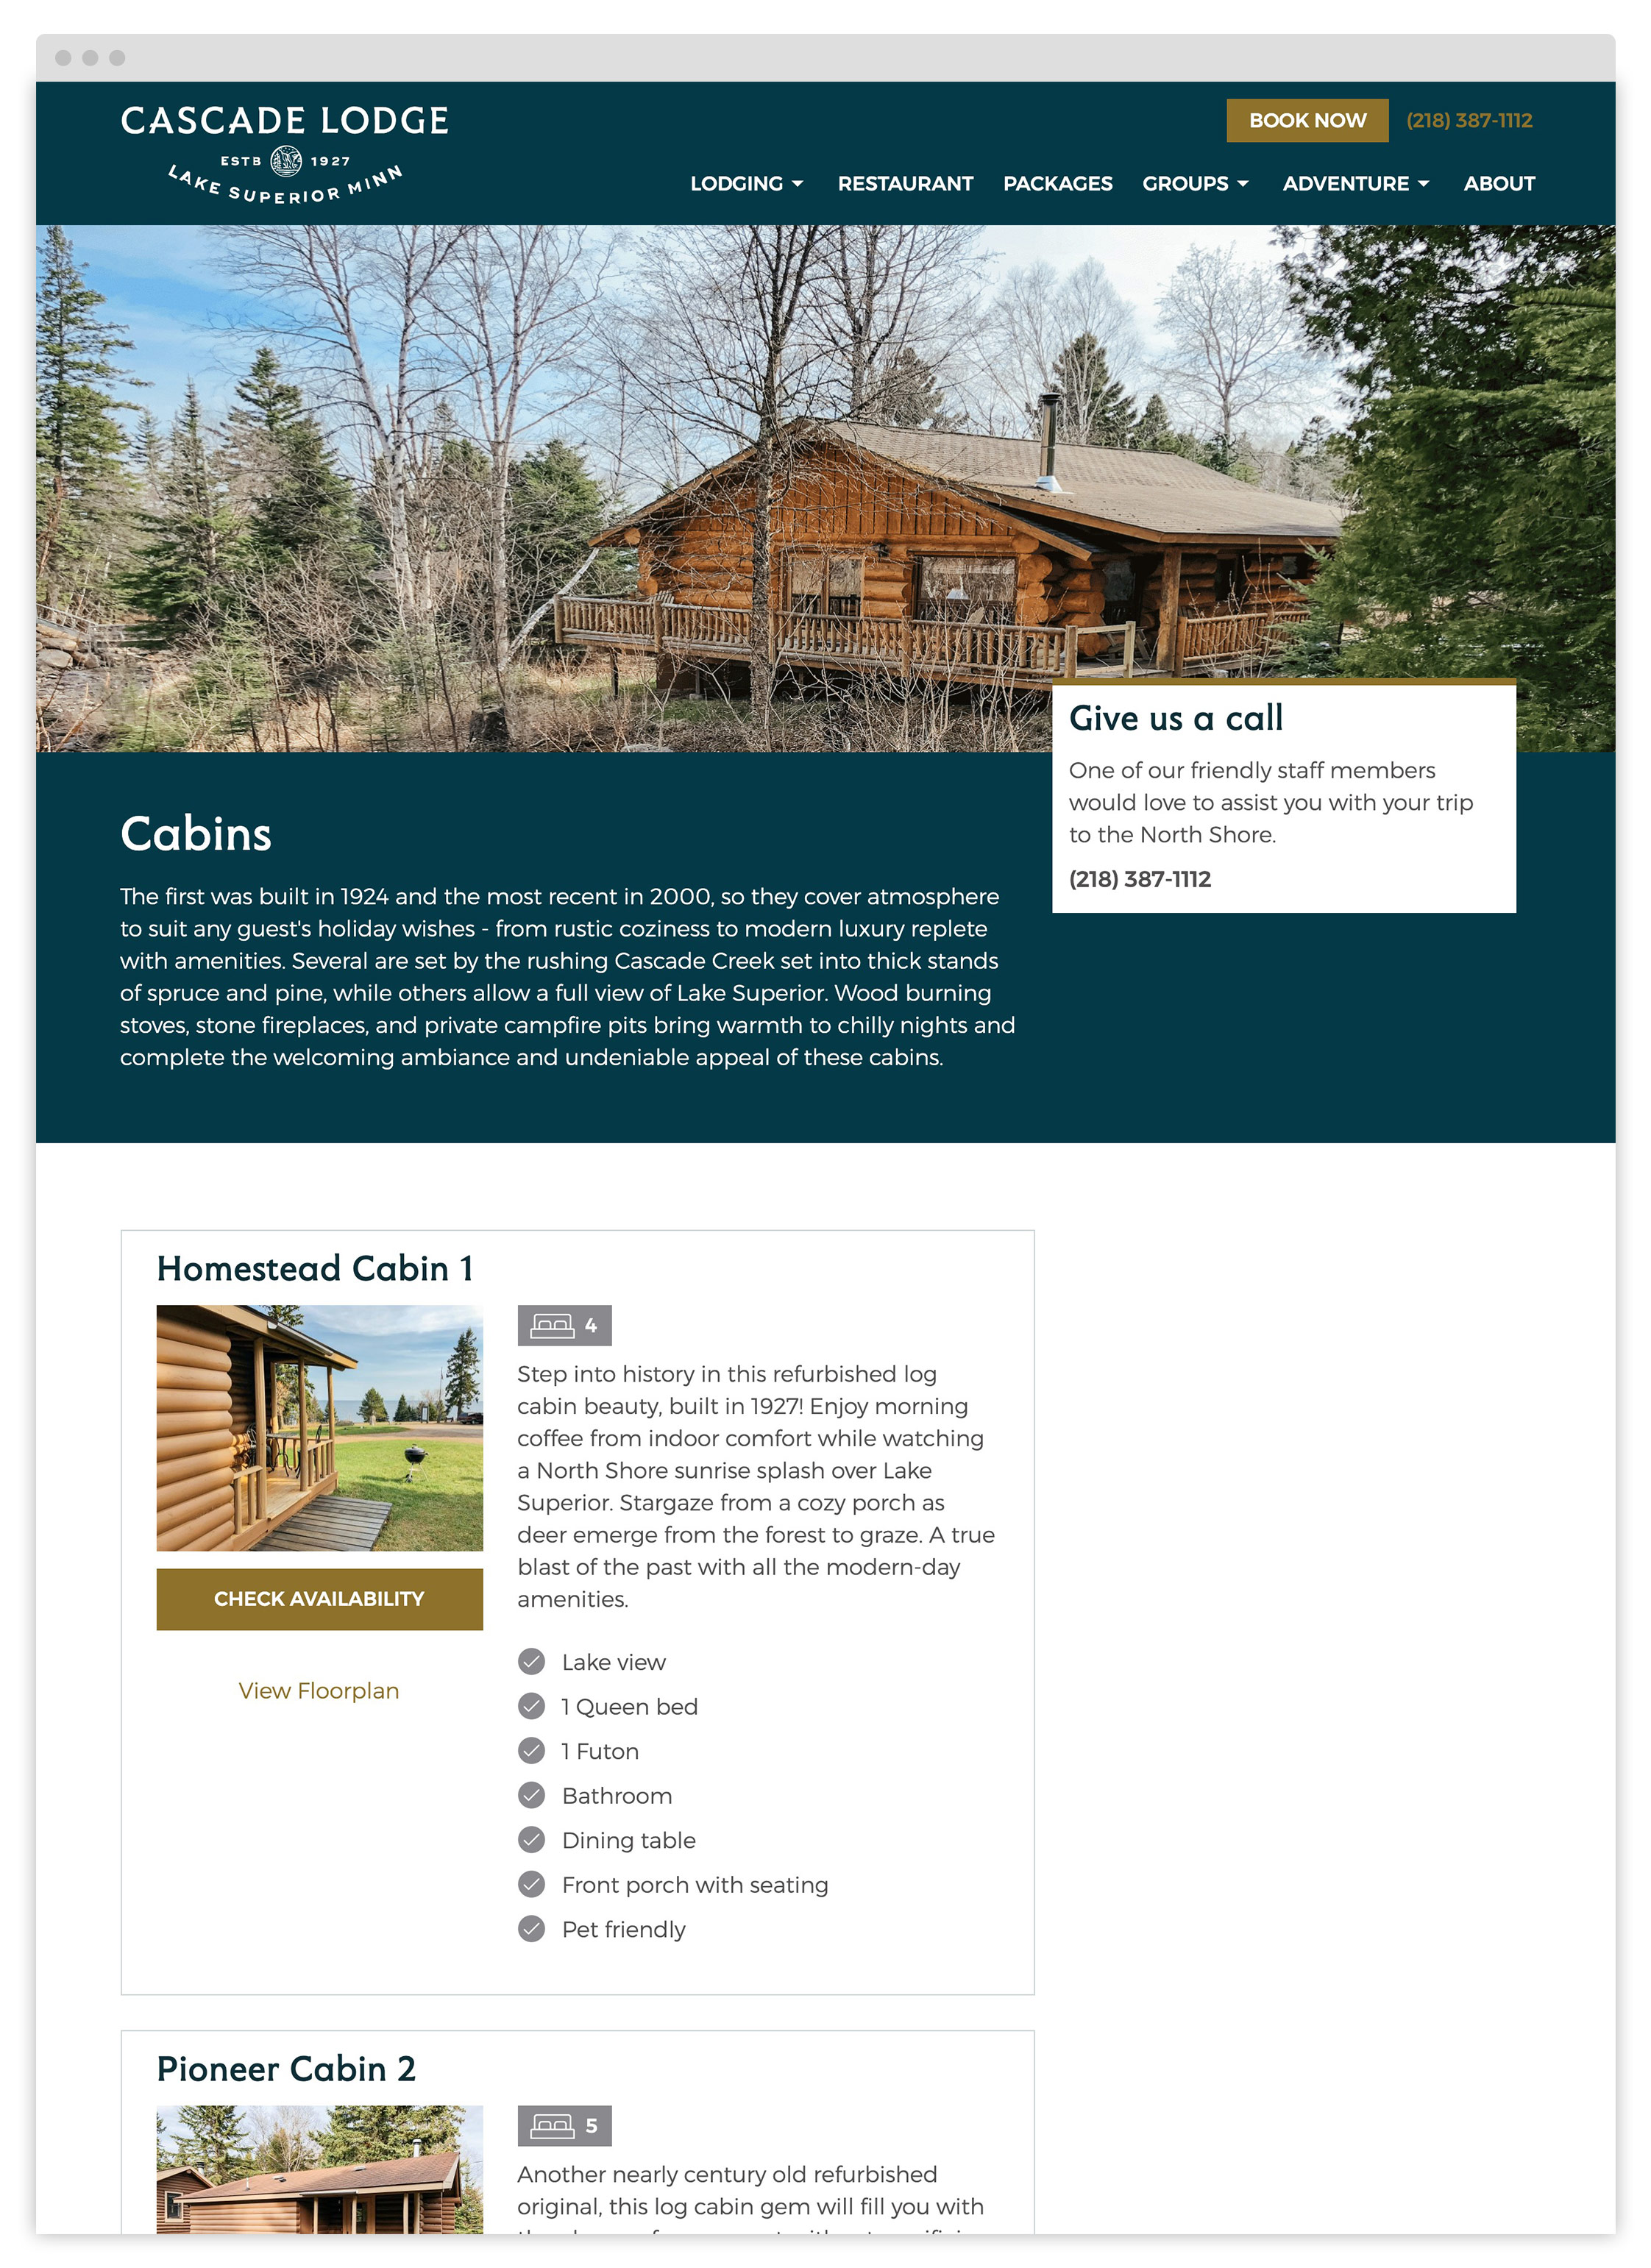 Cascade Lodge Cabins